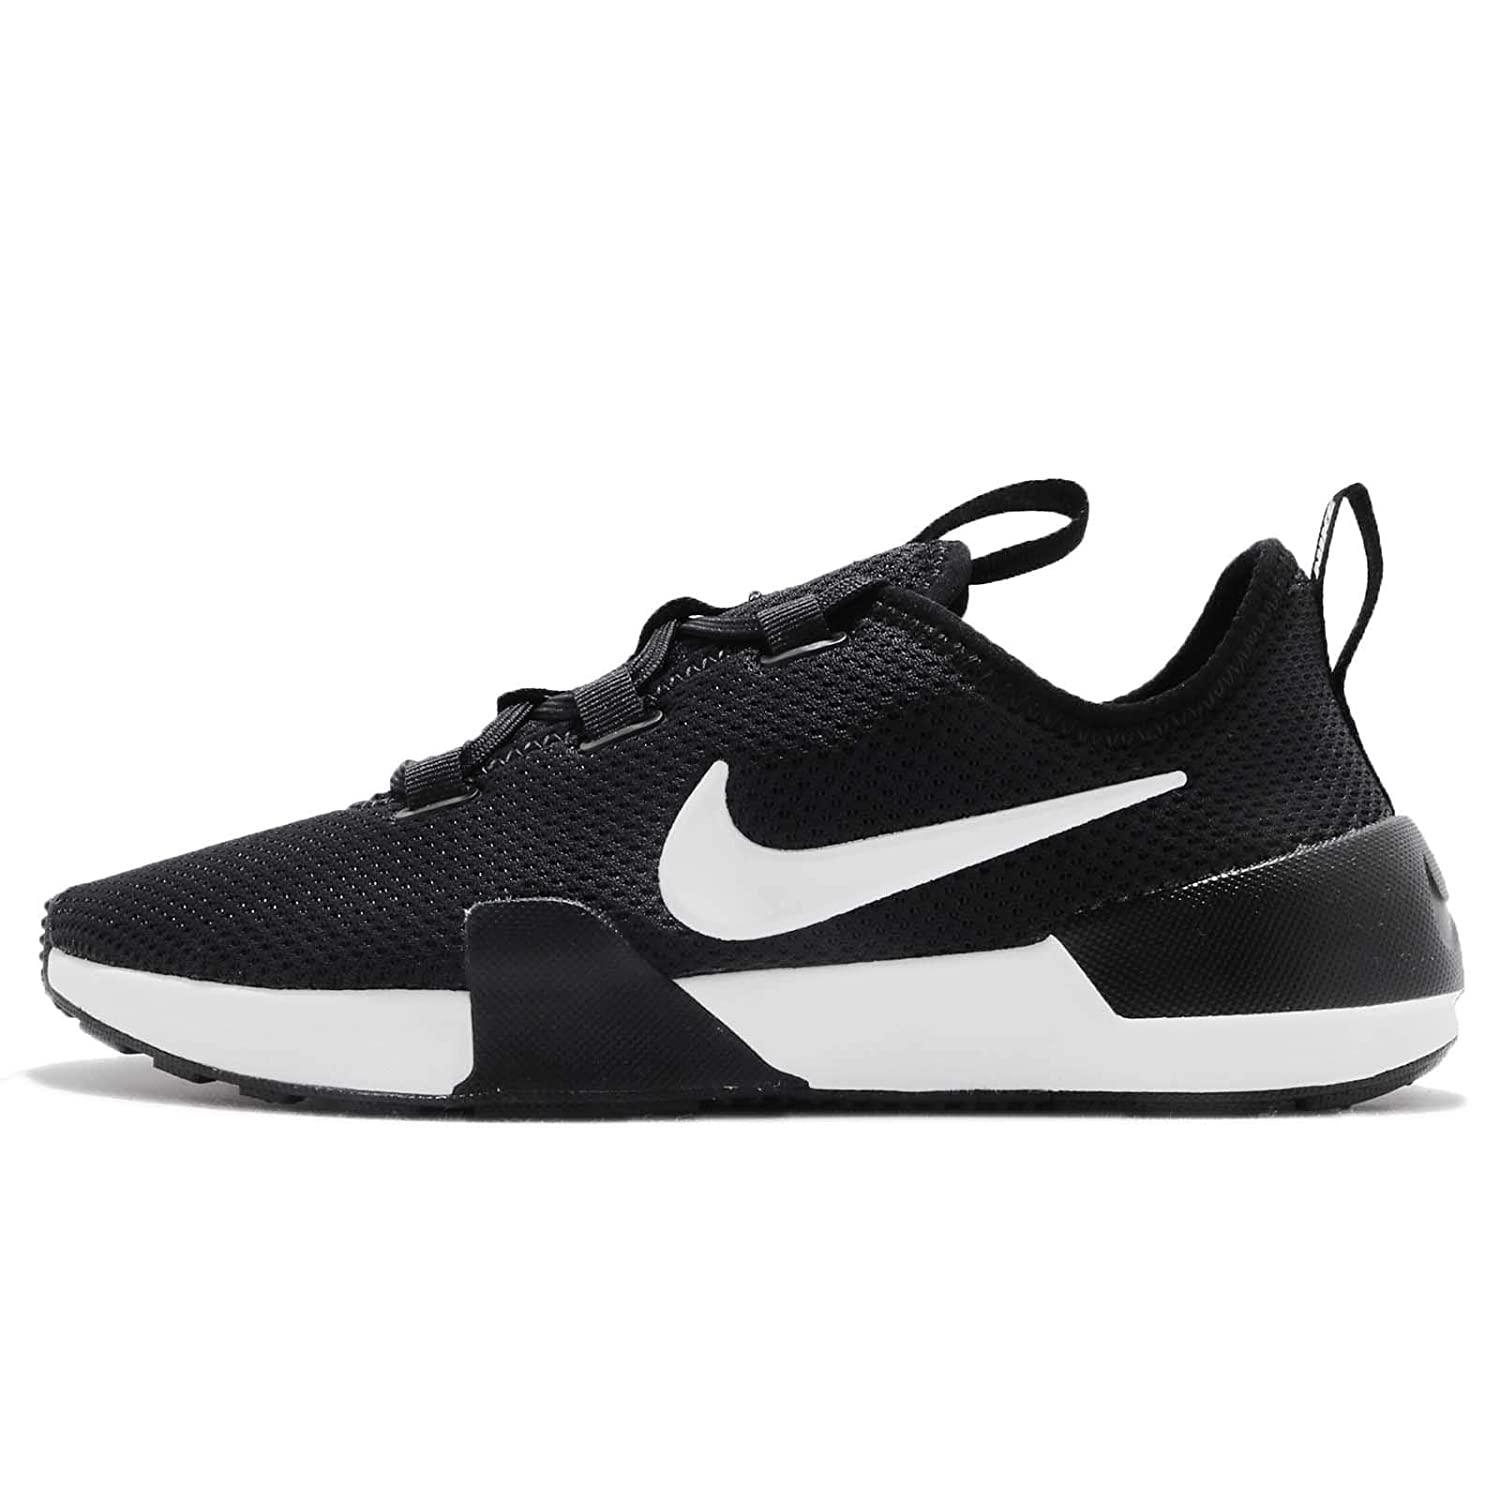 91388fc97bd Nike Women s Ashin Modern Run Shoes